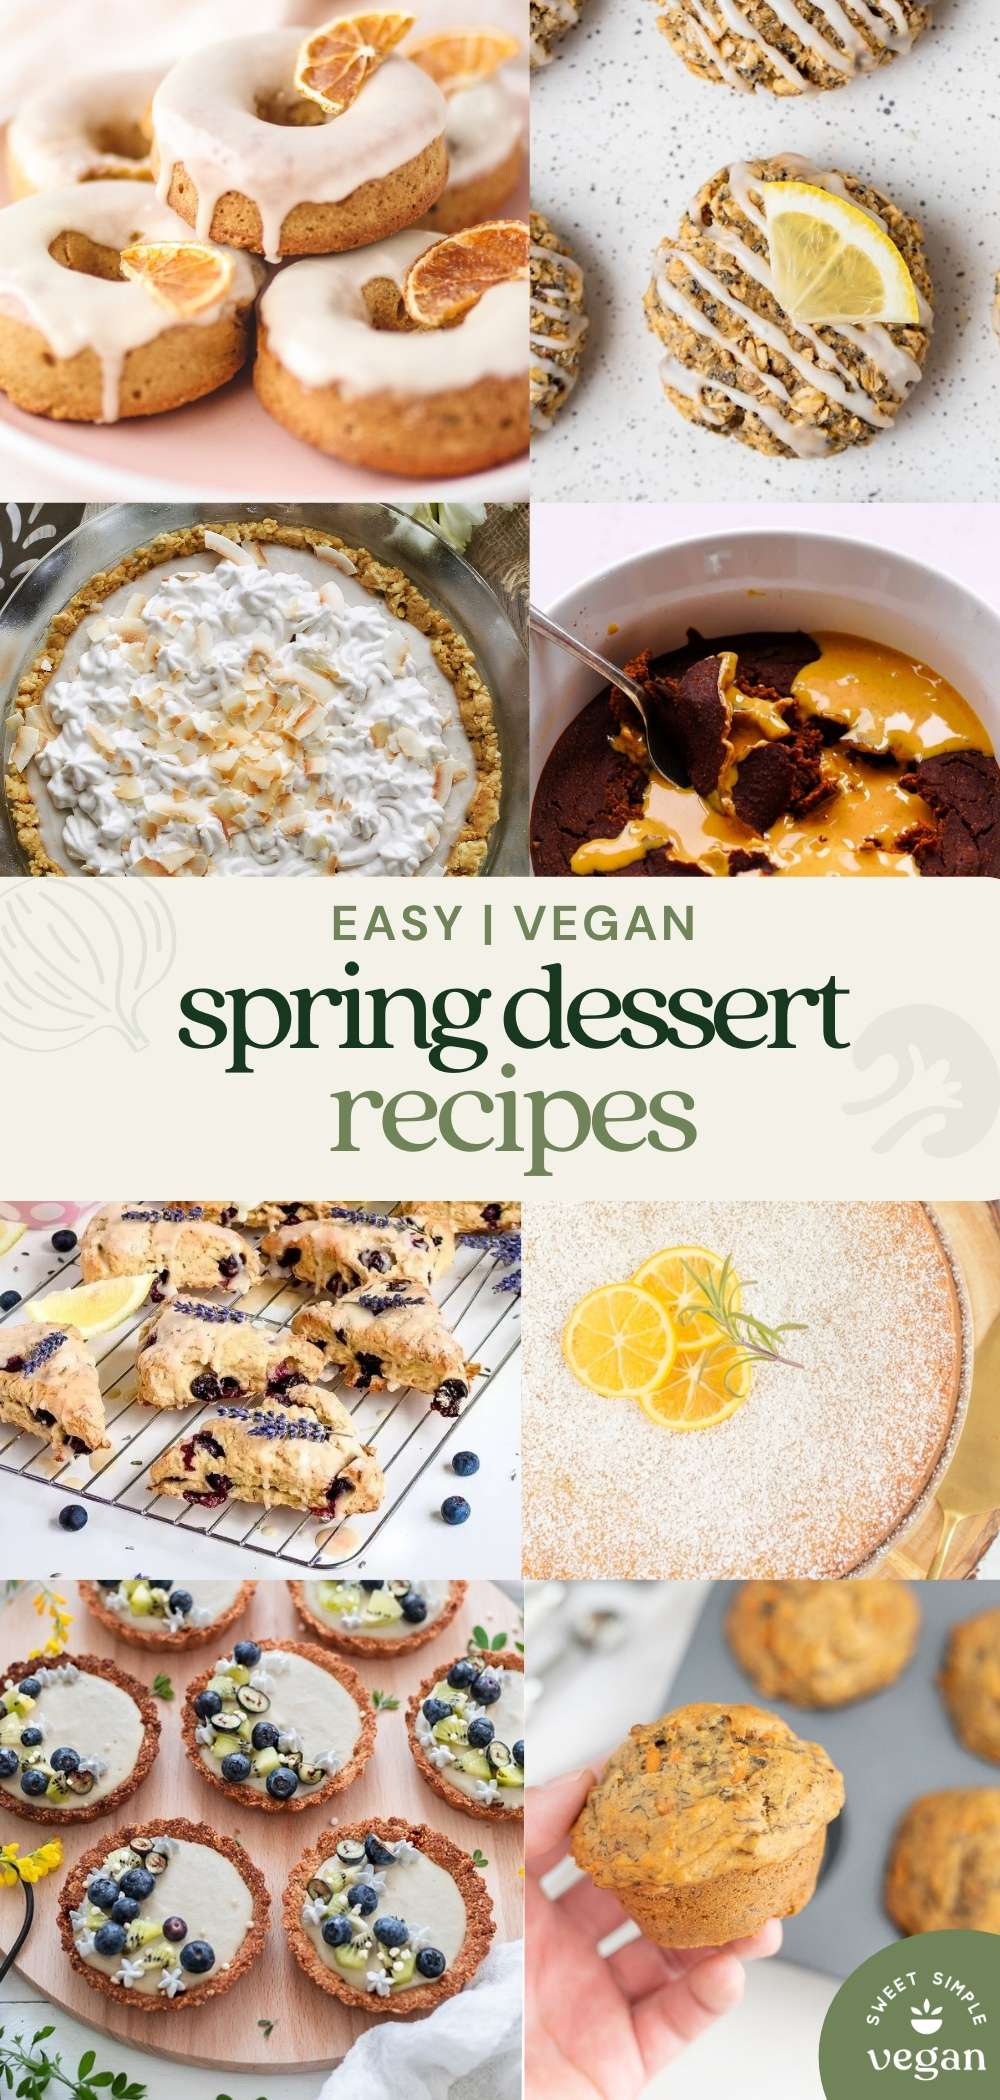 pinterest image with different recipe photos and text.